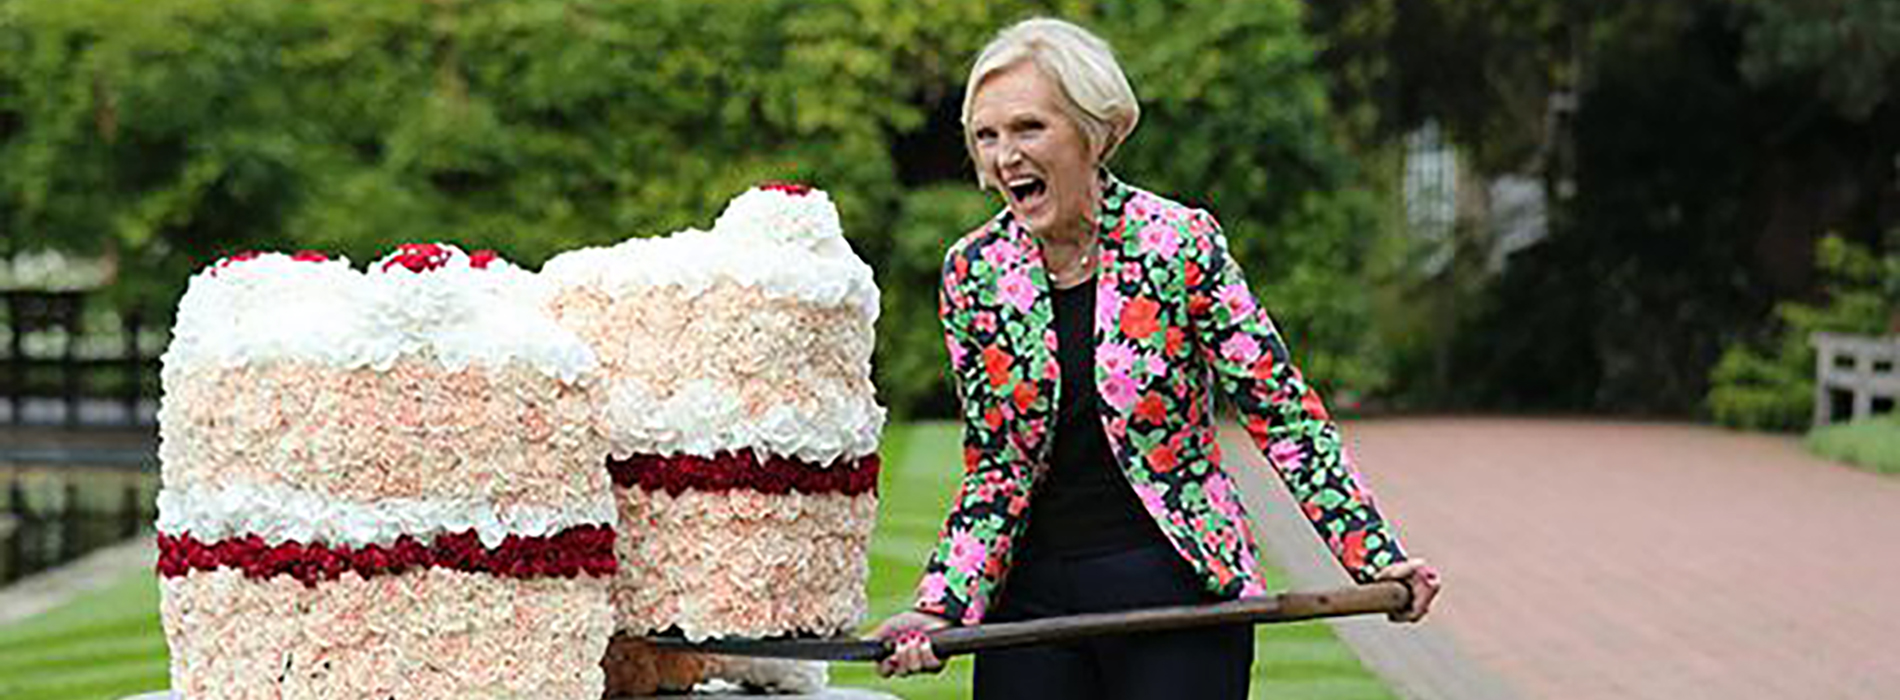 Mary berry and a huge slice of cake